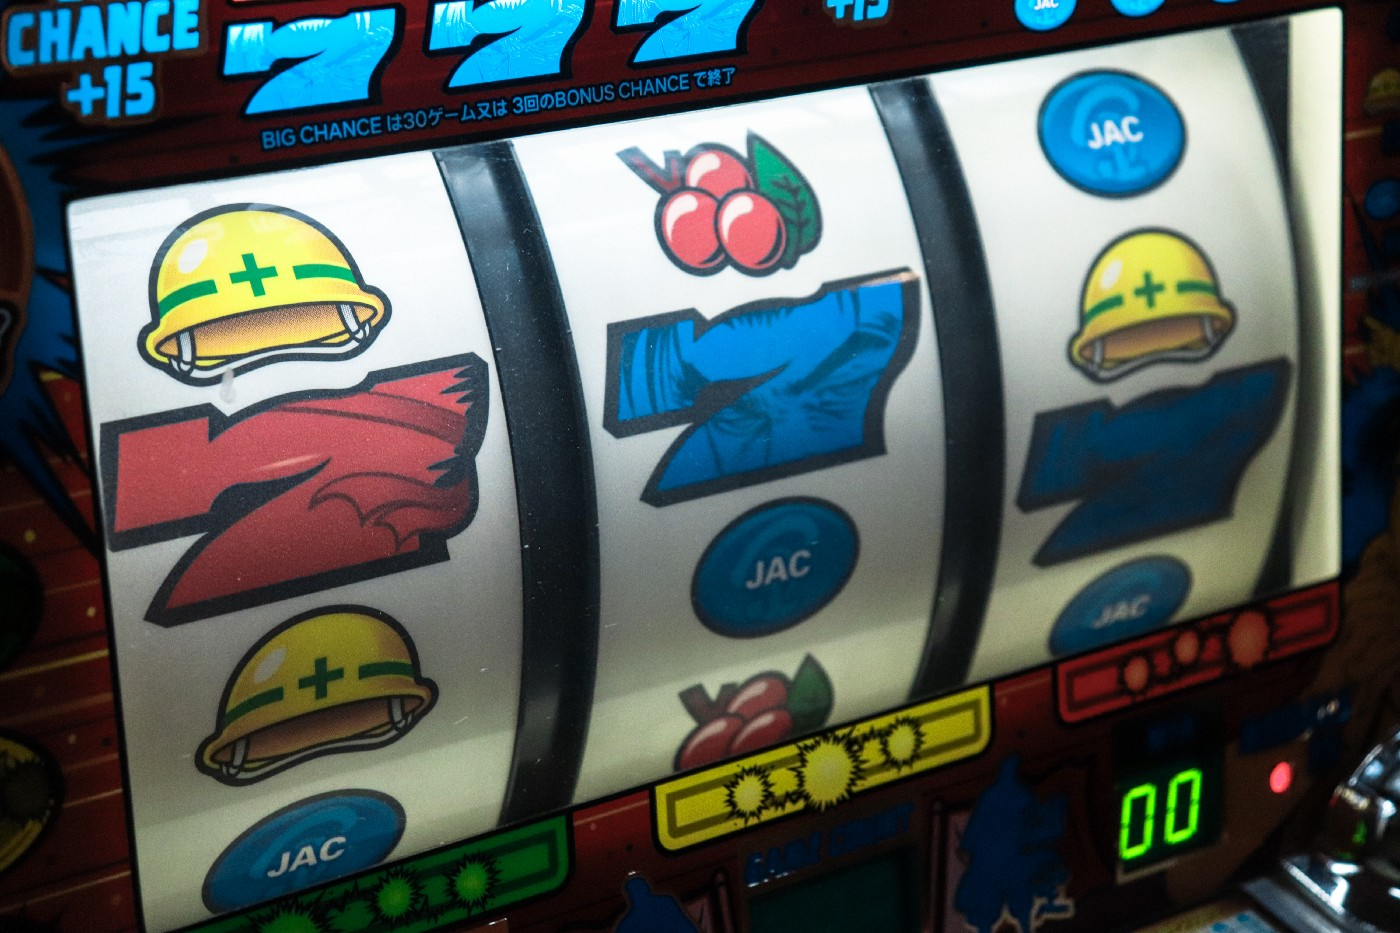 A slots machine showing three sevens.